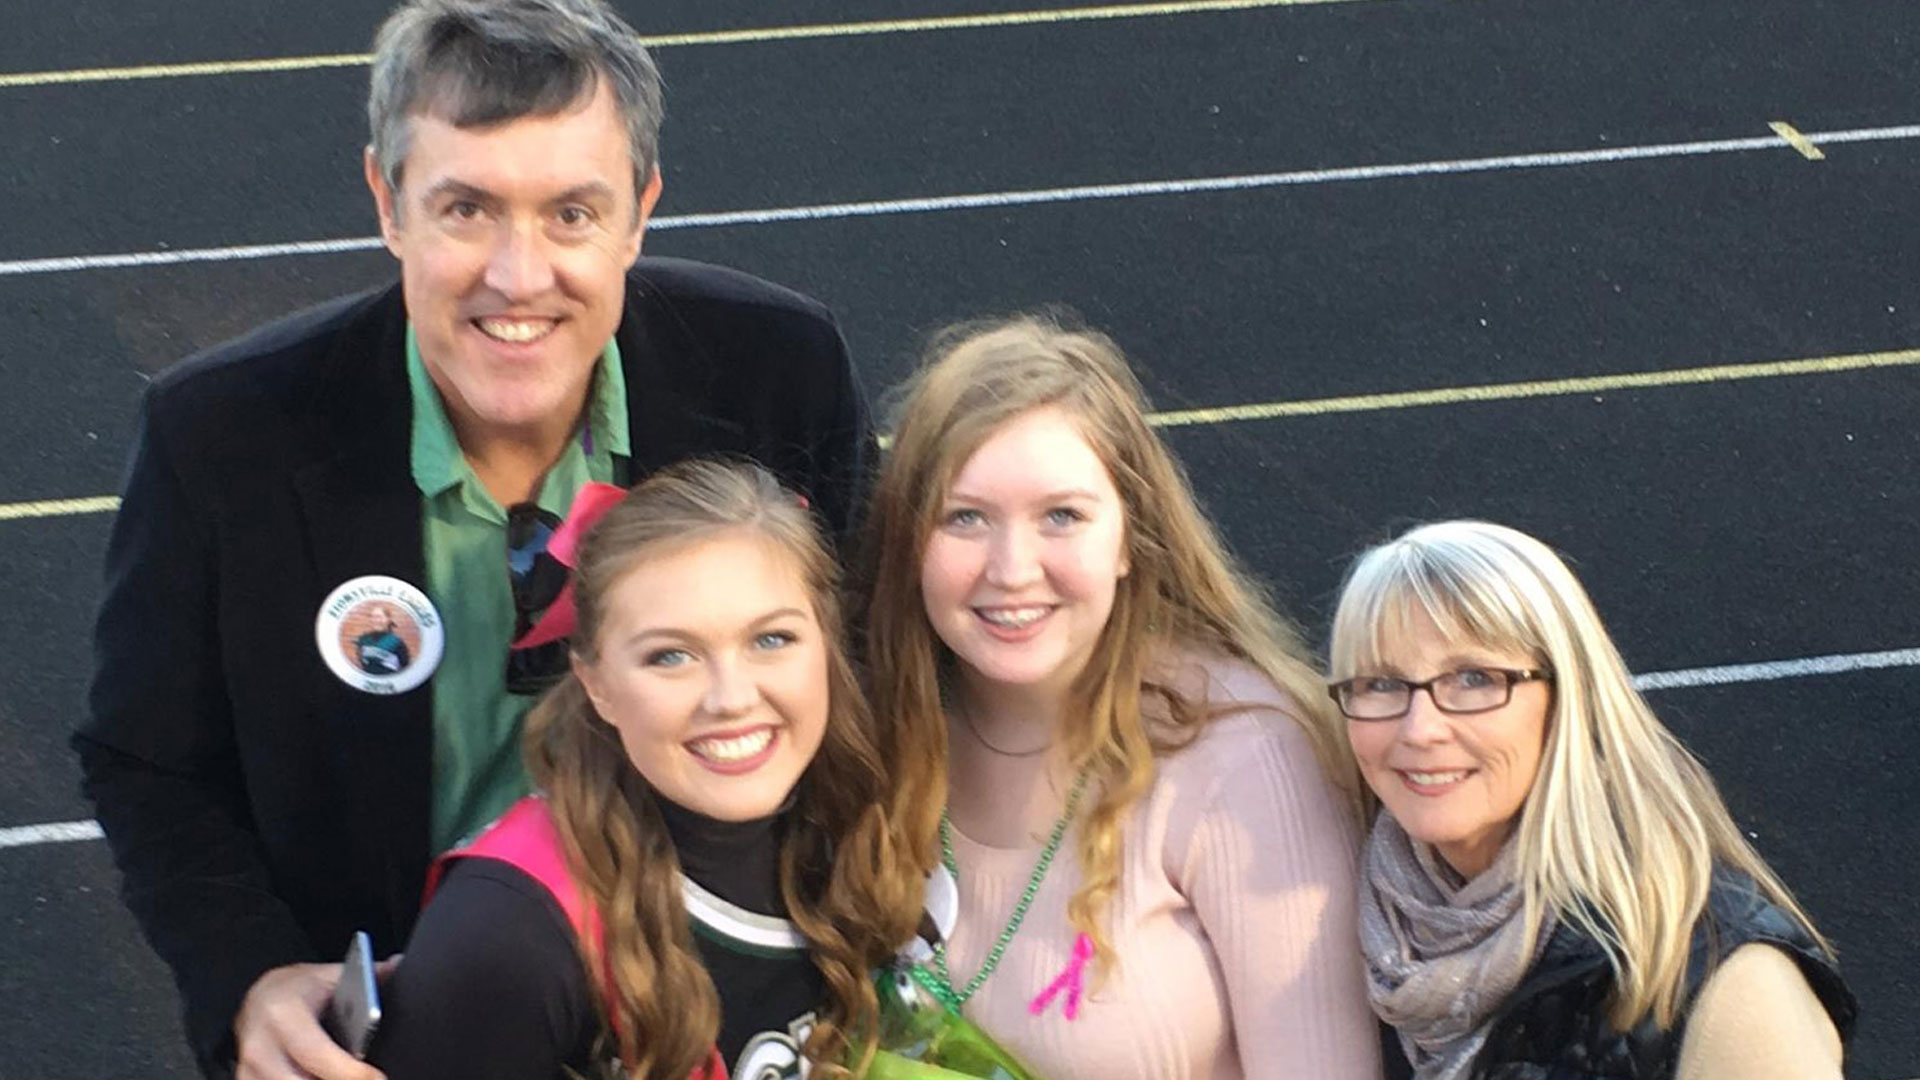 Radio host Kristi Lee with her ex-husband and two daughters.